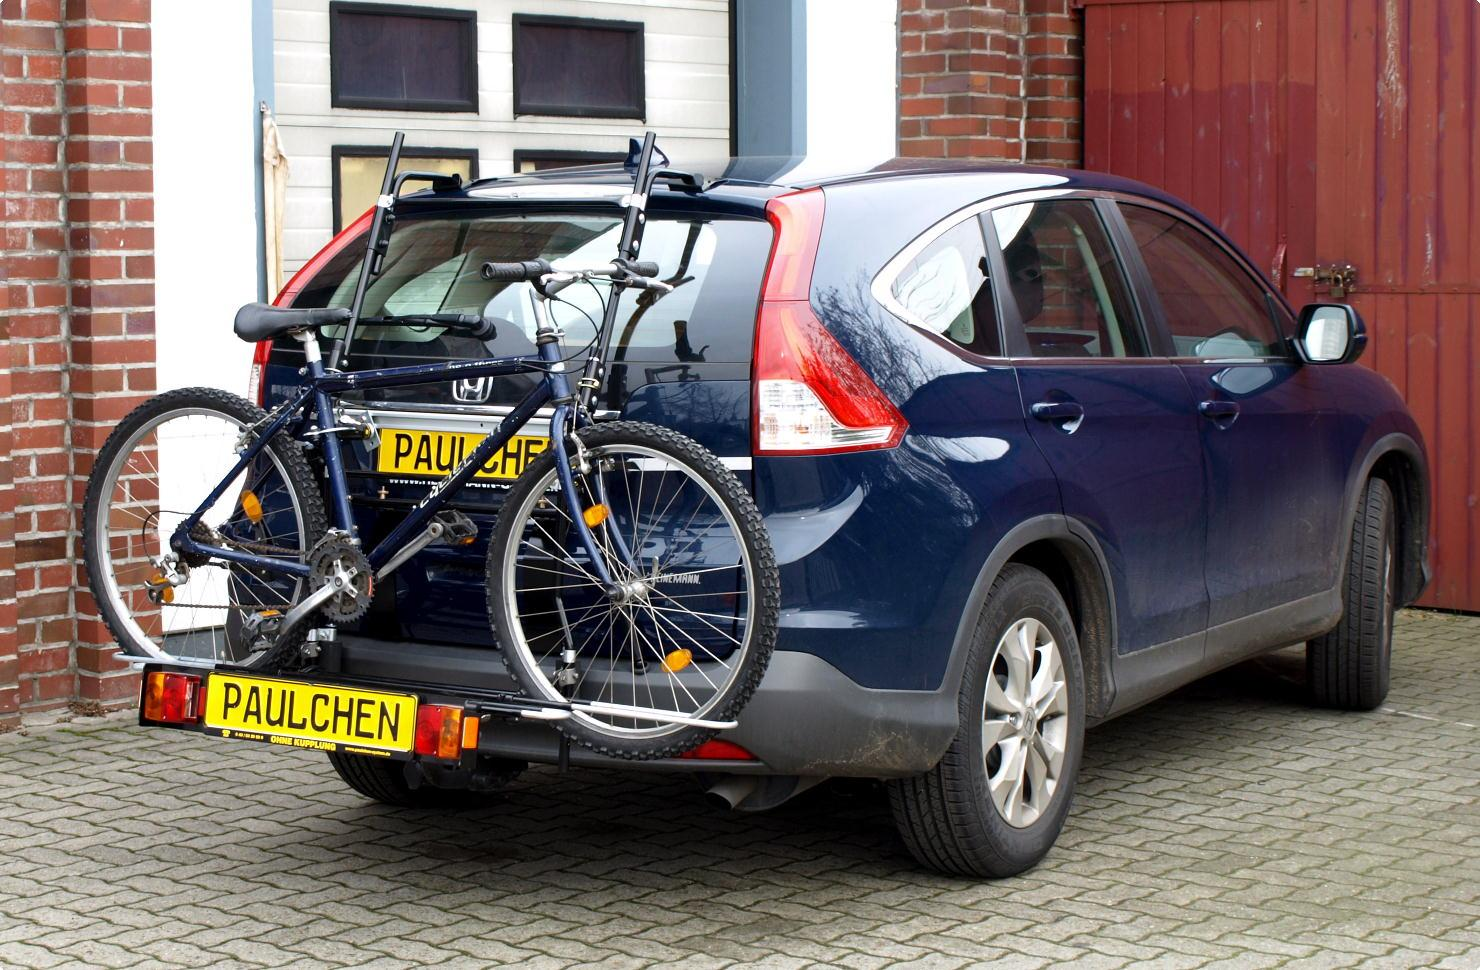 Honda Cr V Iv Re Bike Carrier With Comfort Load Extension And Loaded Bike Without Trailer Hitch